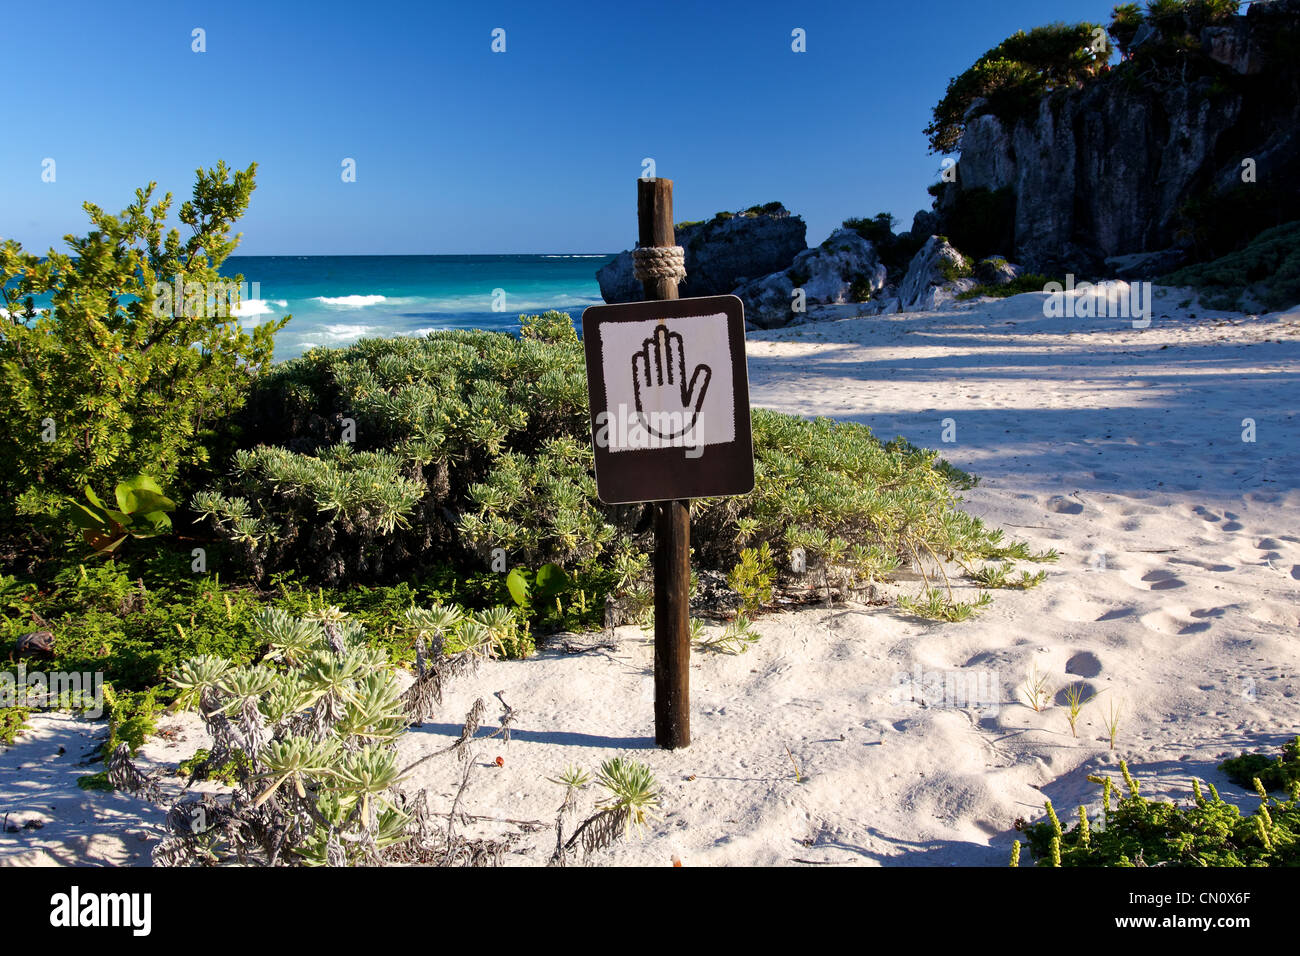 Brown and tan sign showing a hand pictogram at a beautiful Caribbean beach (landscape format) - Stock Image